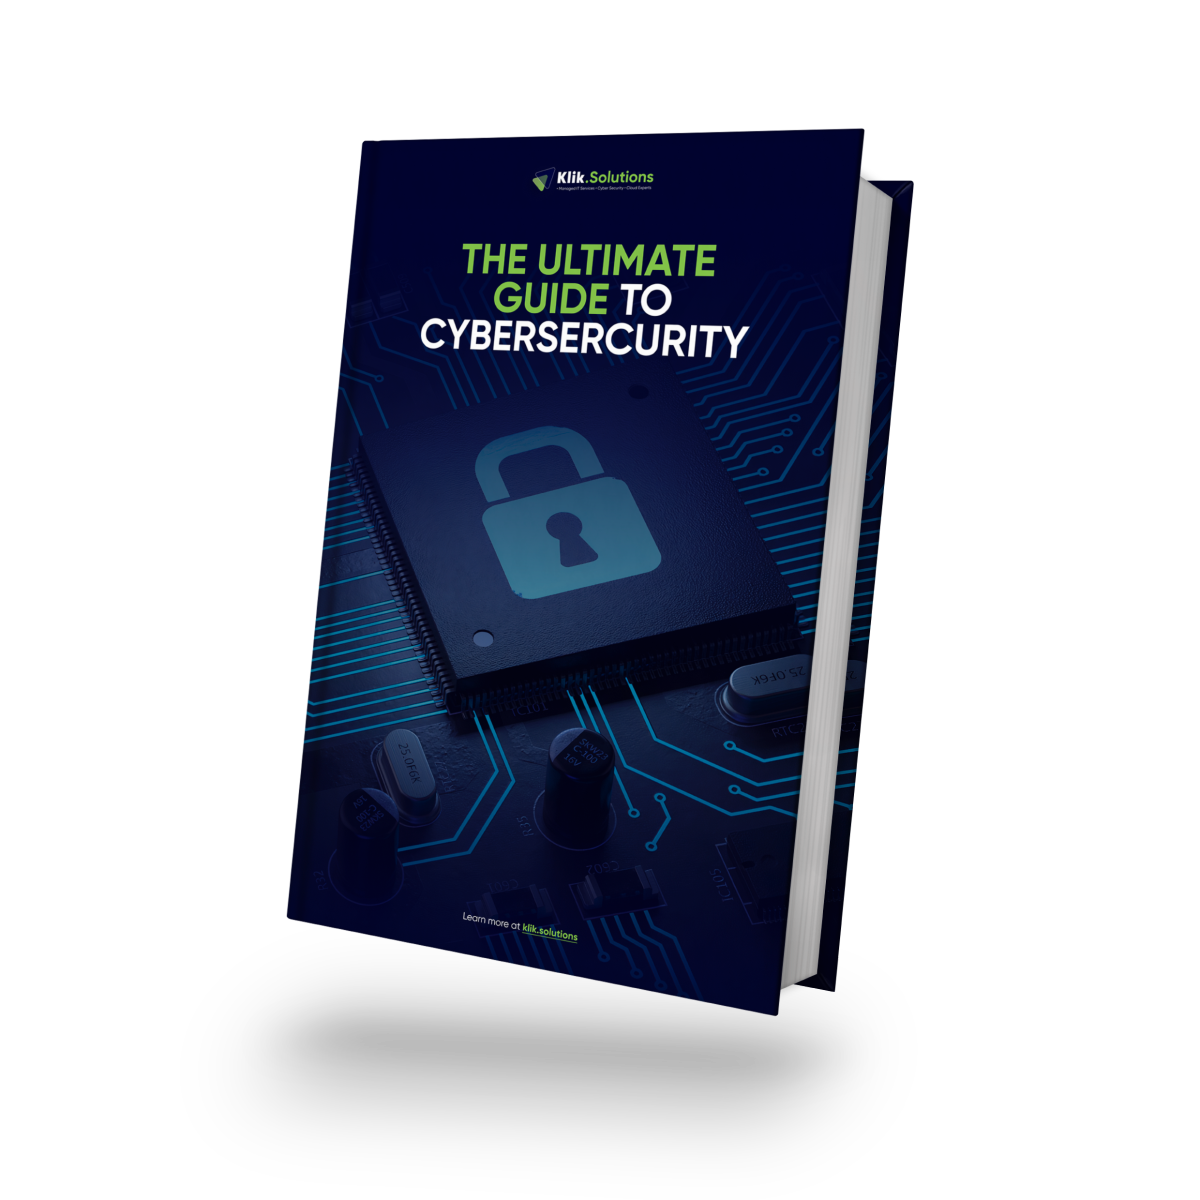 The Ultimate Guide To Cybersercurity